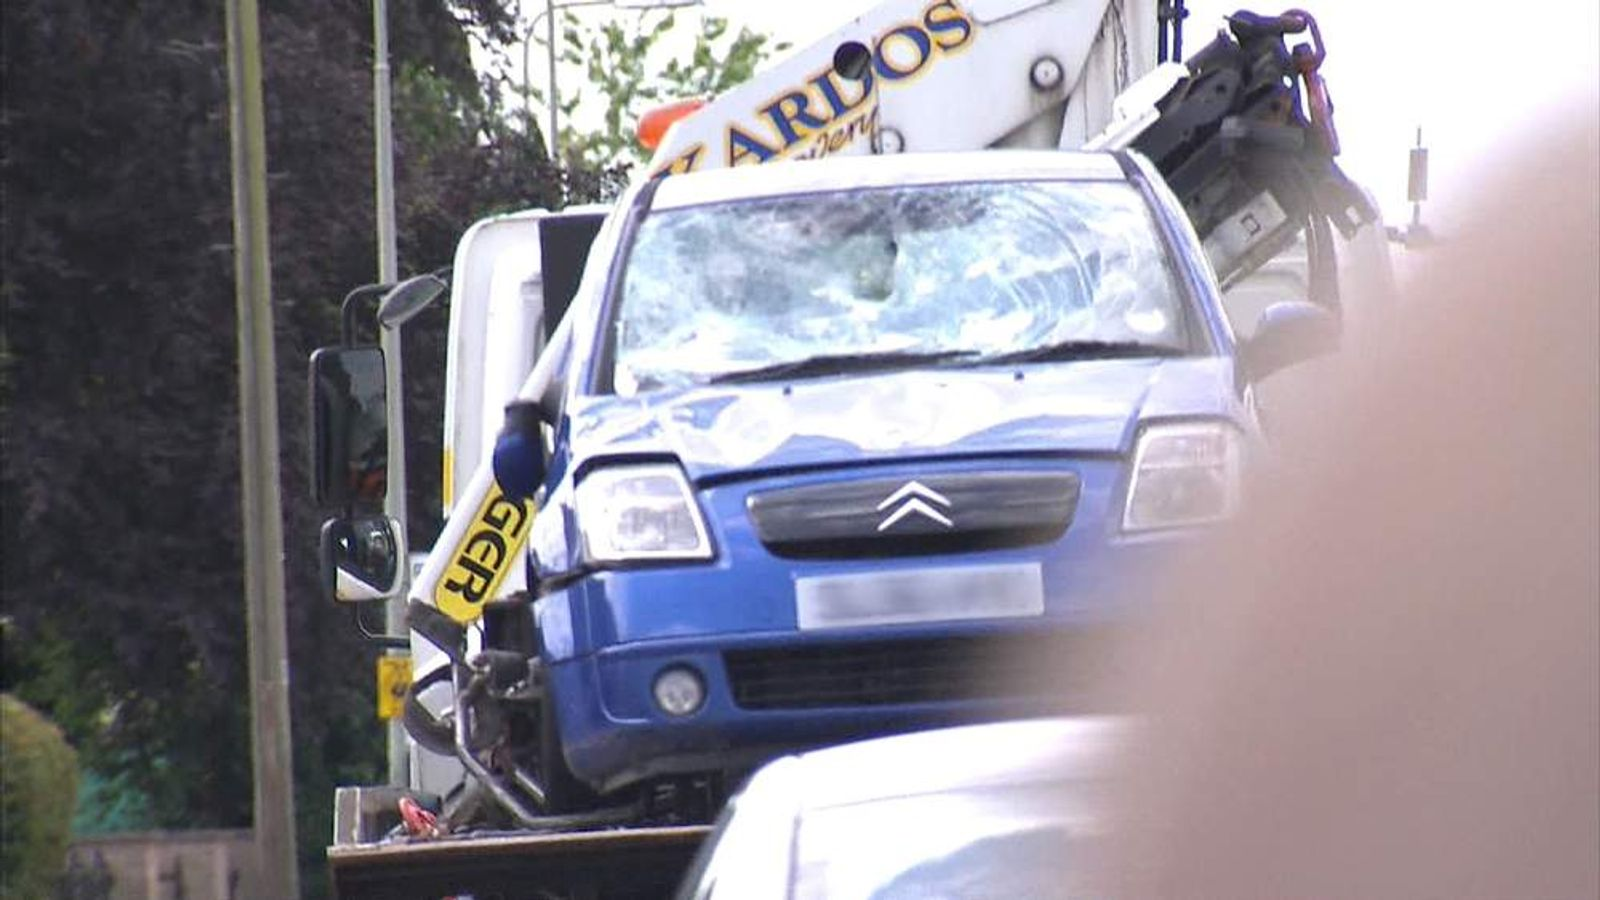 A car involved in a fatal crash in Witney, Oxfordshire, is removed on the back of a low loader